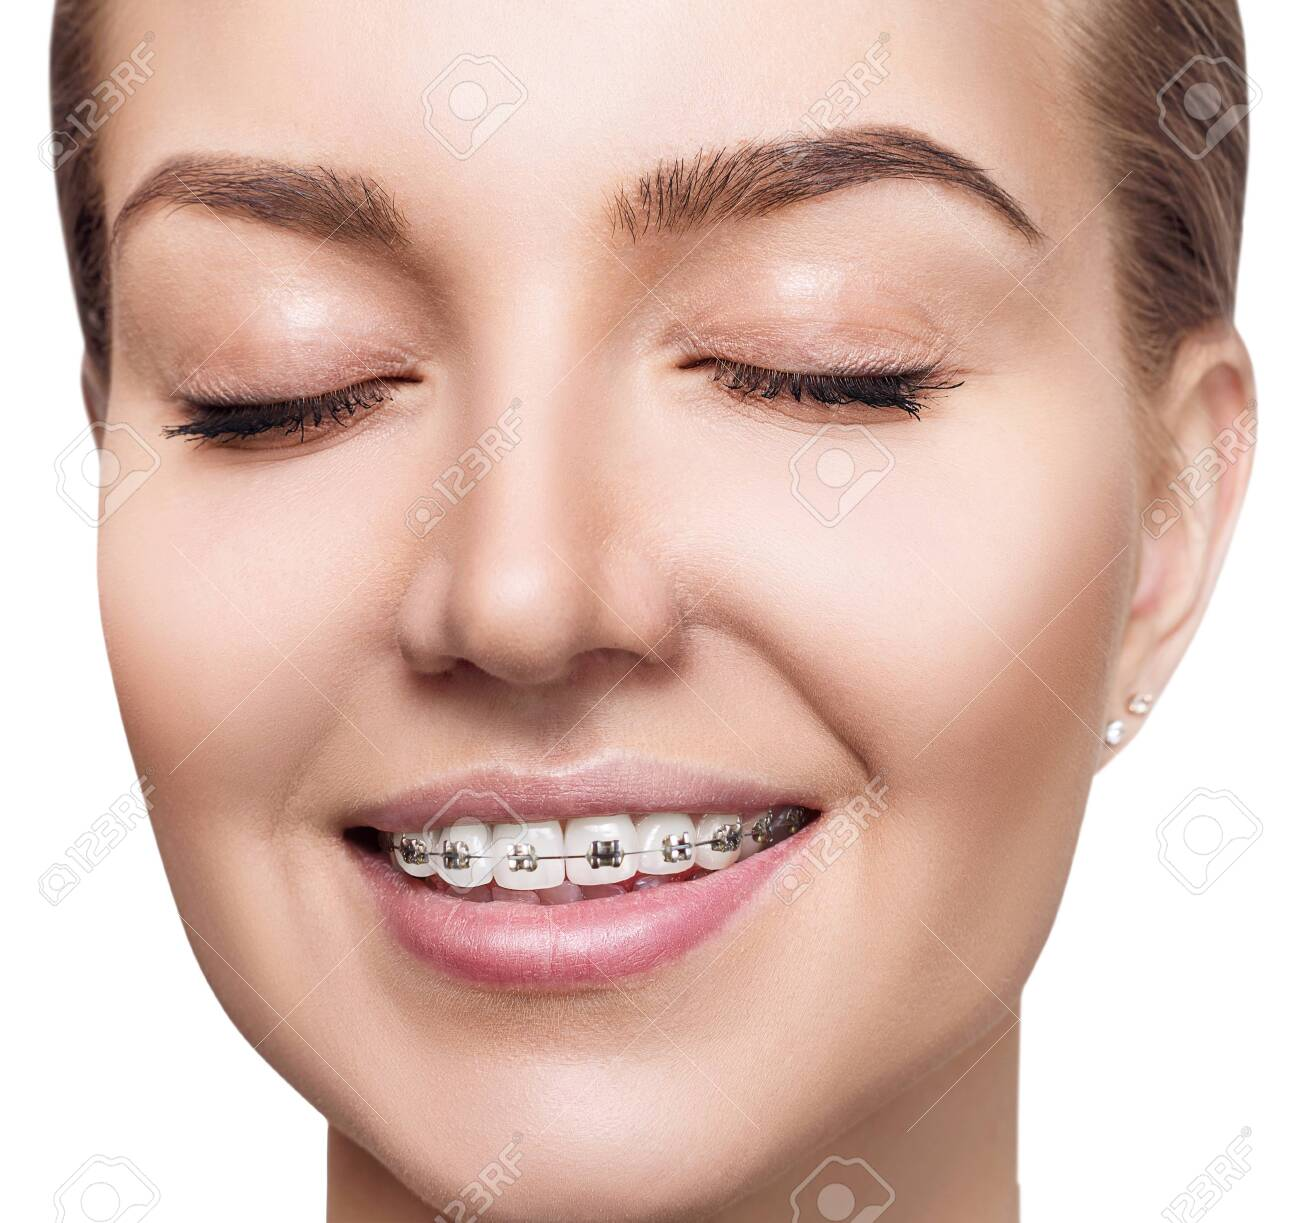 Young woman with braces on teeth. - 129089156